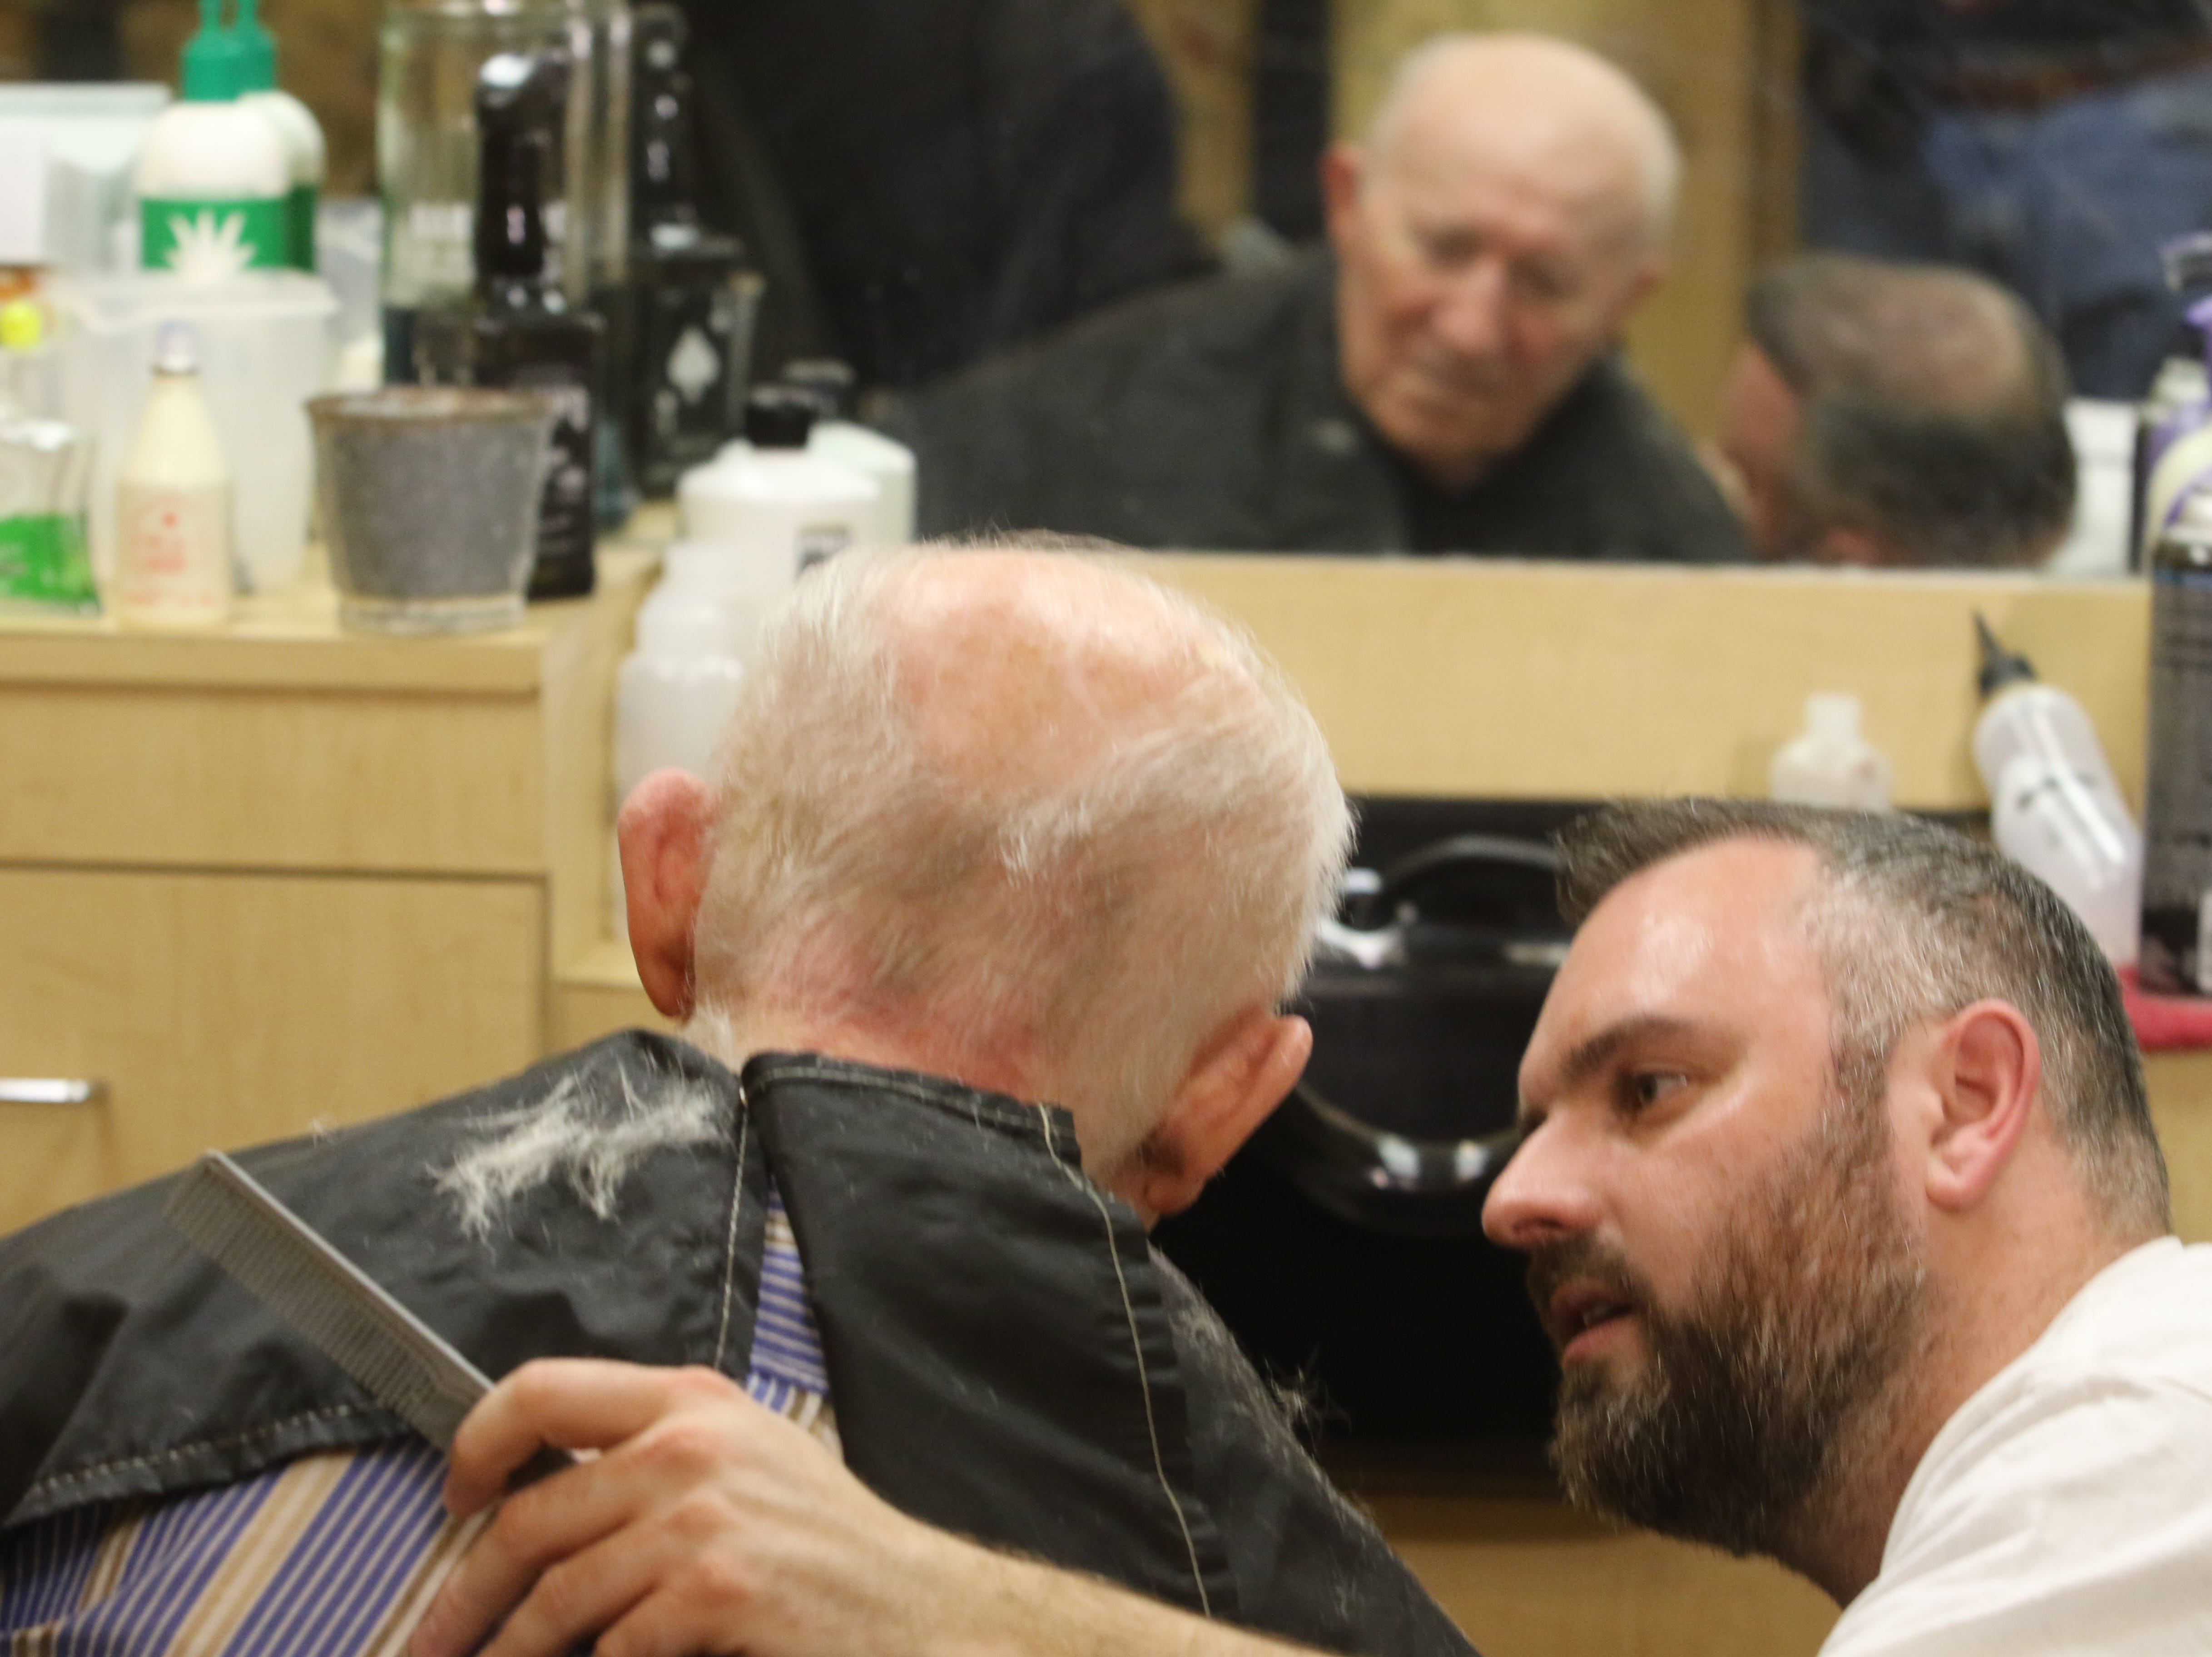 Lenny White, a barber from Northern Ireland, spends some time talking with Constantine Soukas 83 as White gave him a complimentary haircut. Soukas is a resident of The Chelsea of Montville, an assisted living facility in Montville Twp., NJ on January 3, 2019.